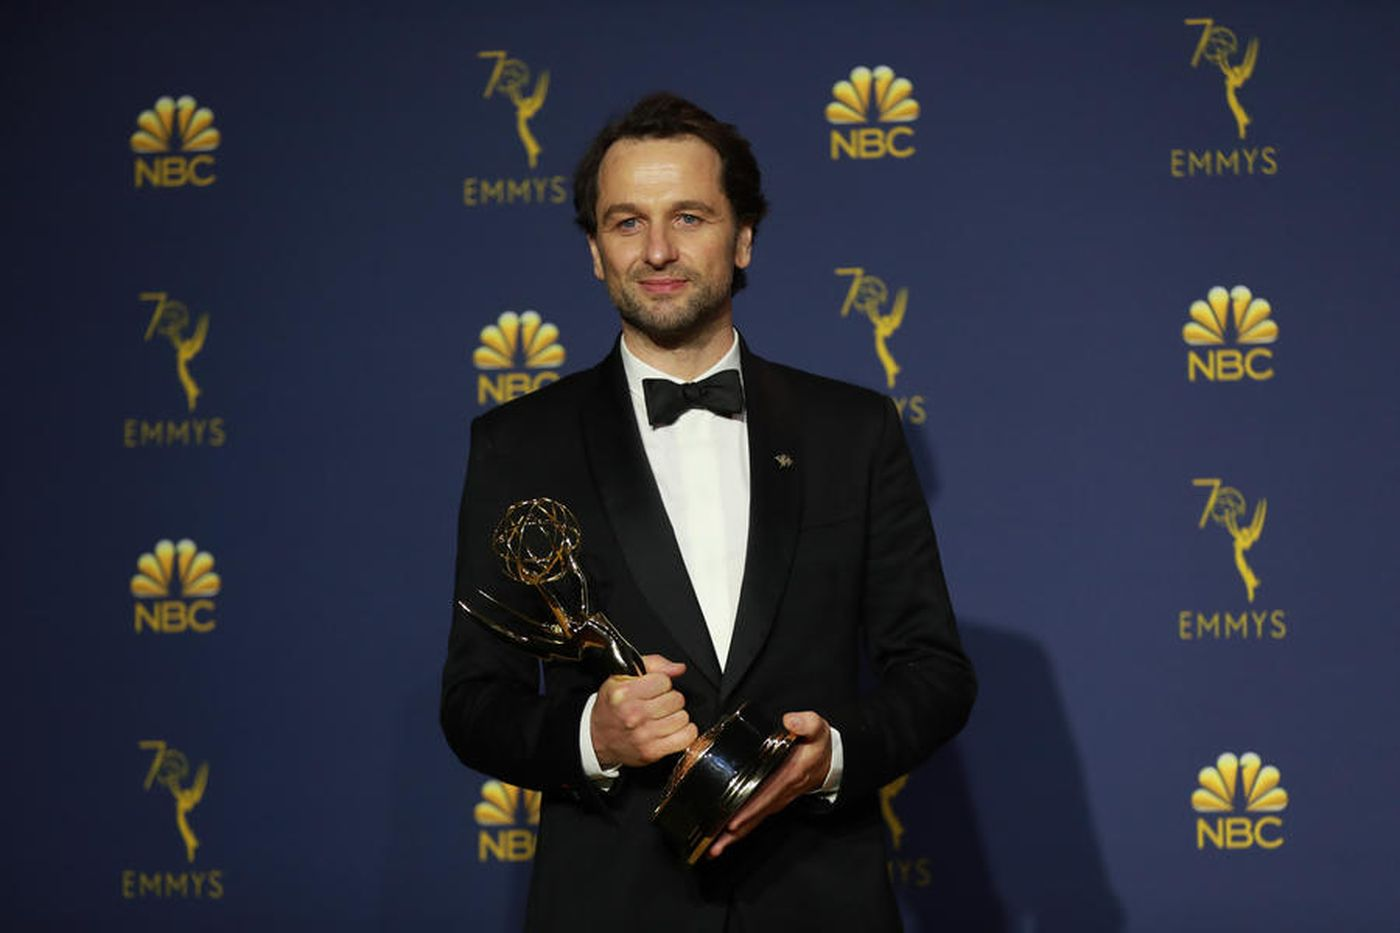 Matthew Rhys reflects on the terrifying experience of giving an Emmy acceptance speech